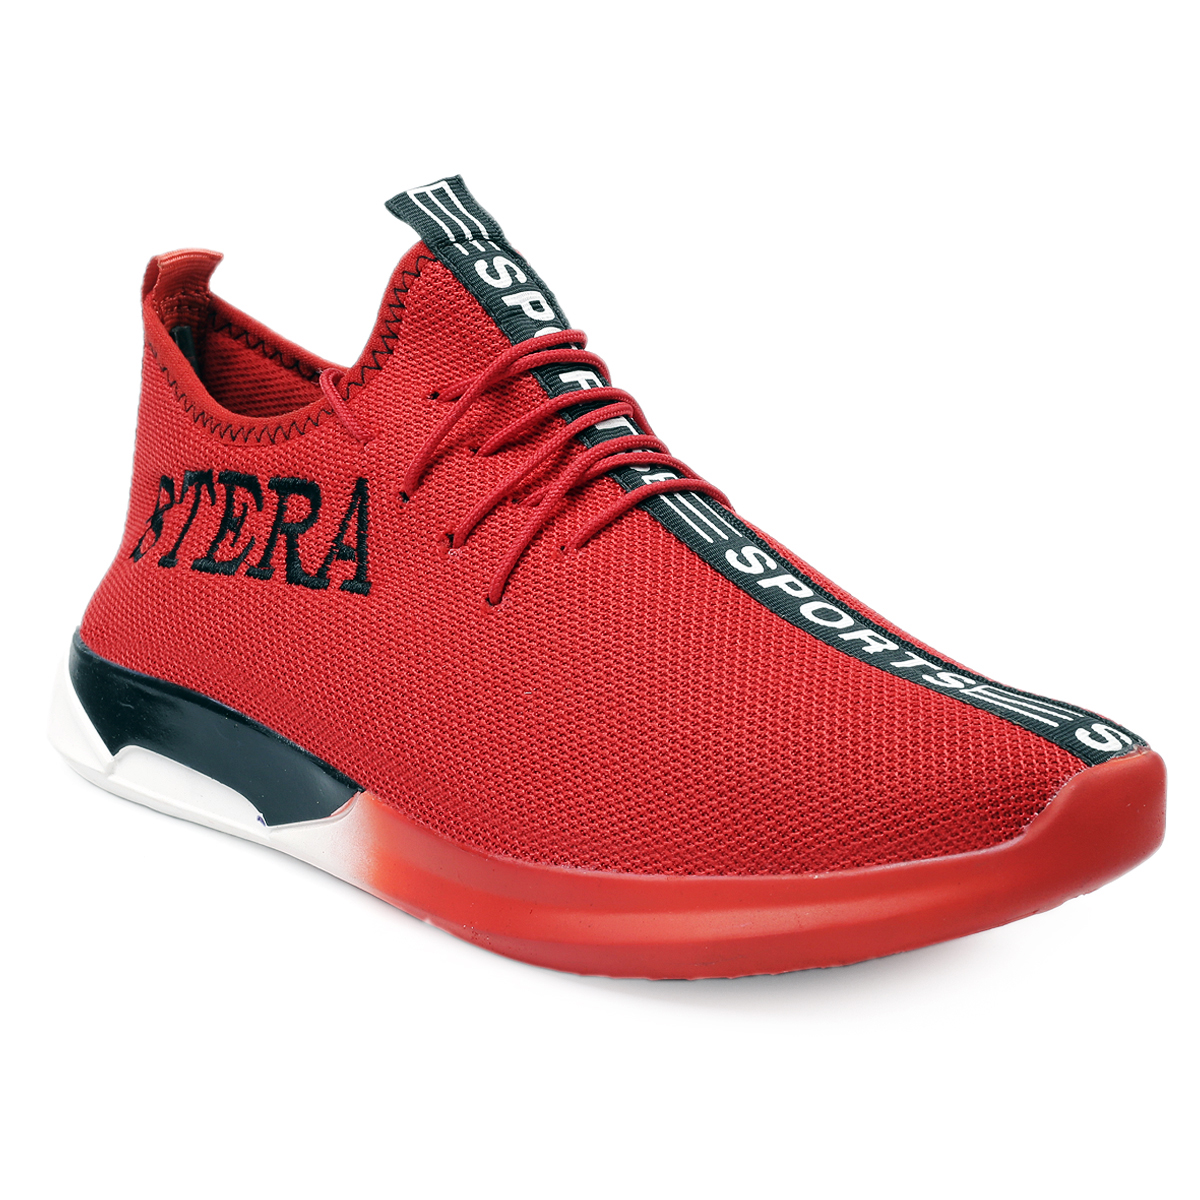 STERA SNEAKER SHOE SPT-1001RED (RED,7-10,8 PAIR)